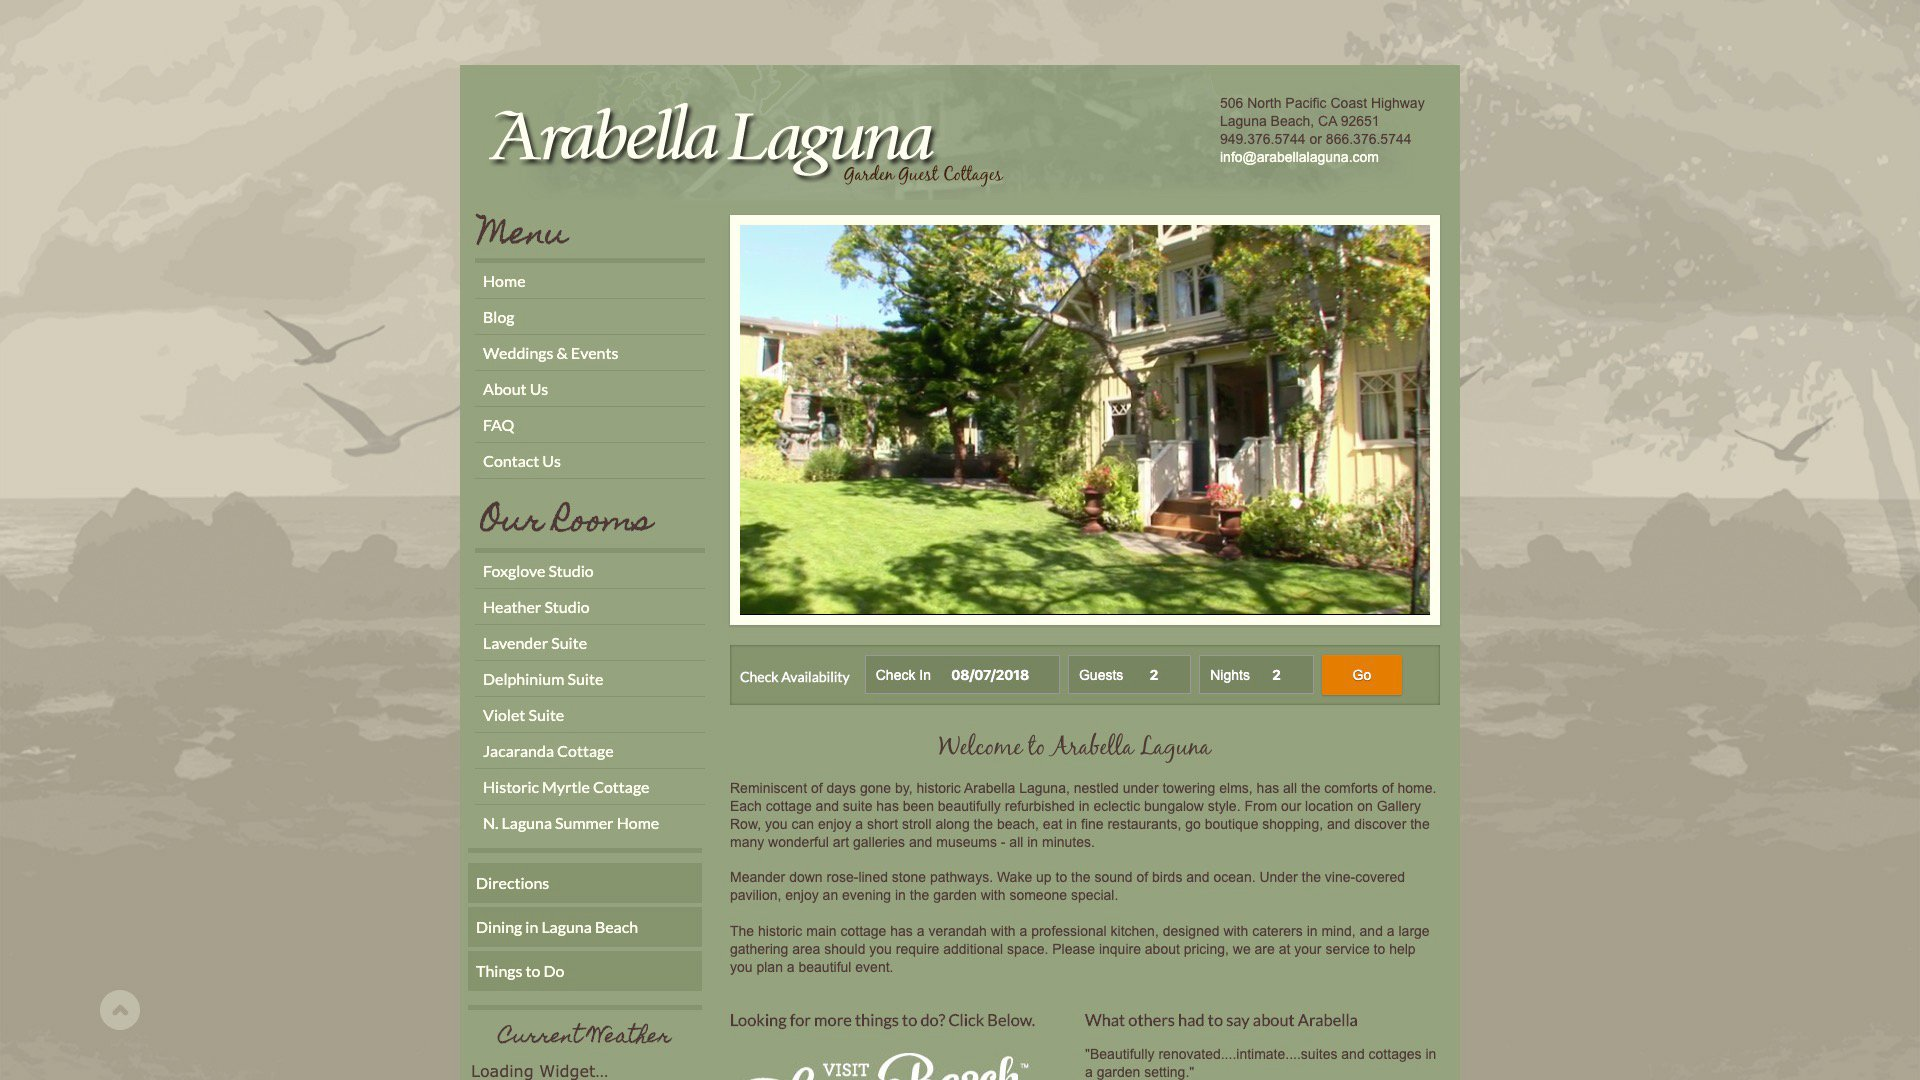 A Photo of Arabella's Homepage